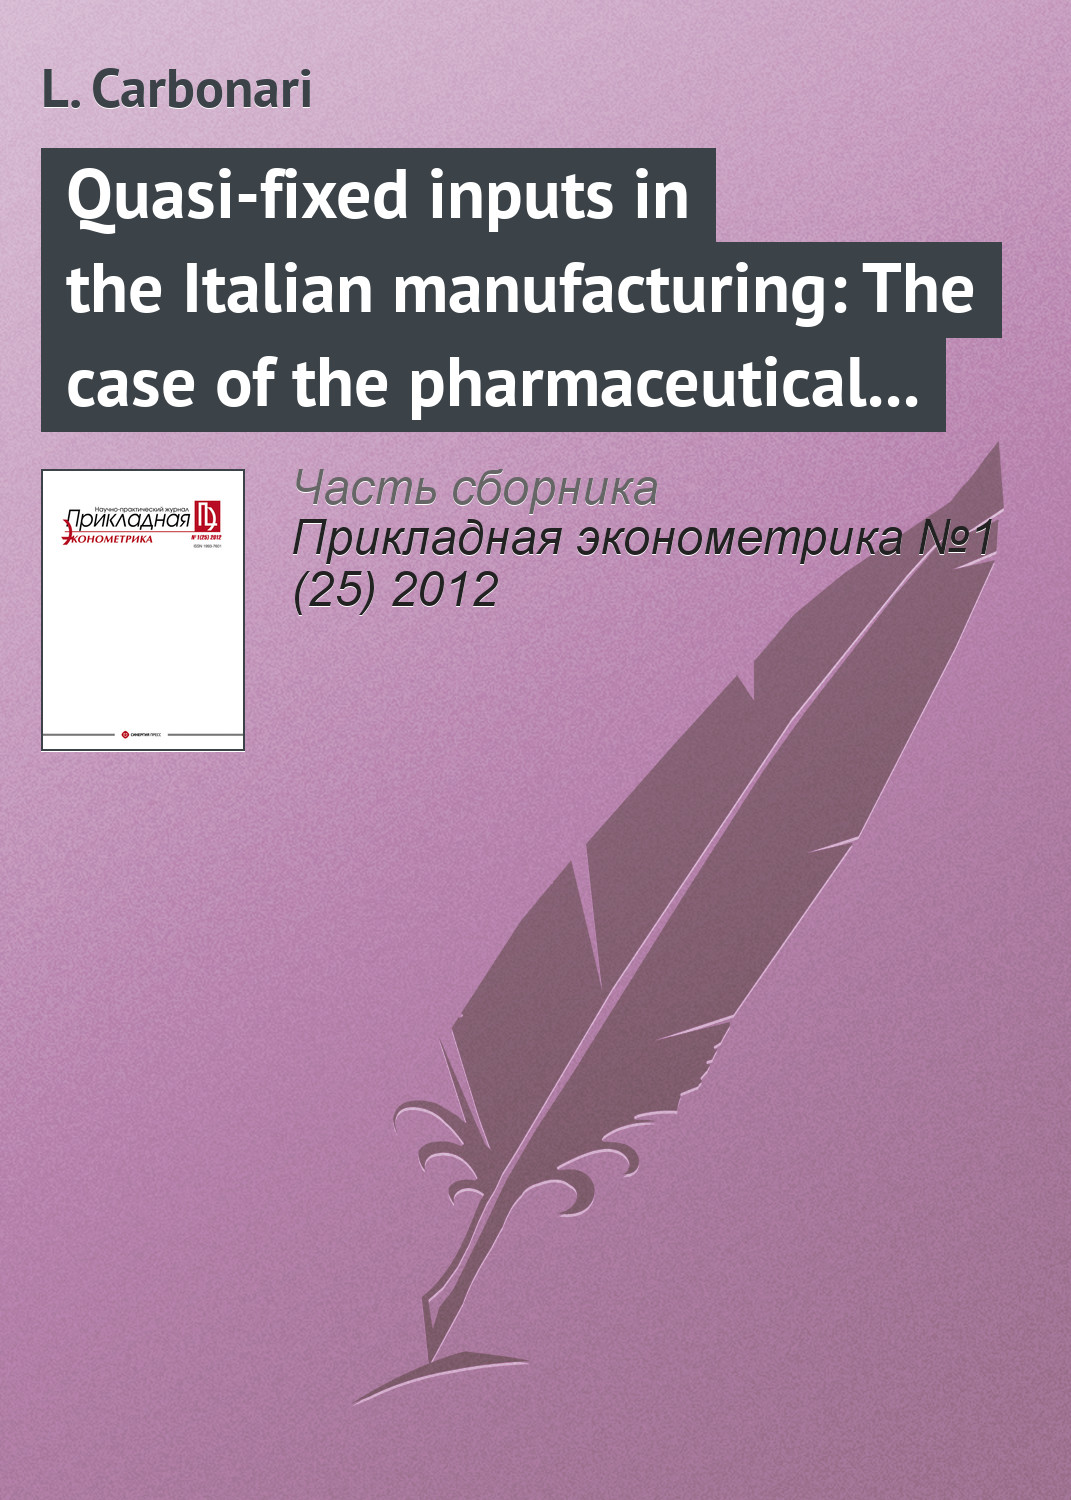 Quasi-fixed inputs in the Italian manufacturing: The case of the pharmaceutical industry